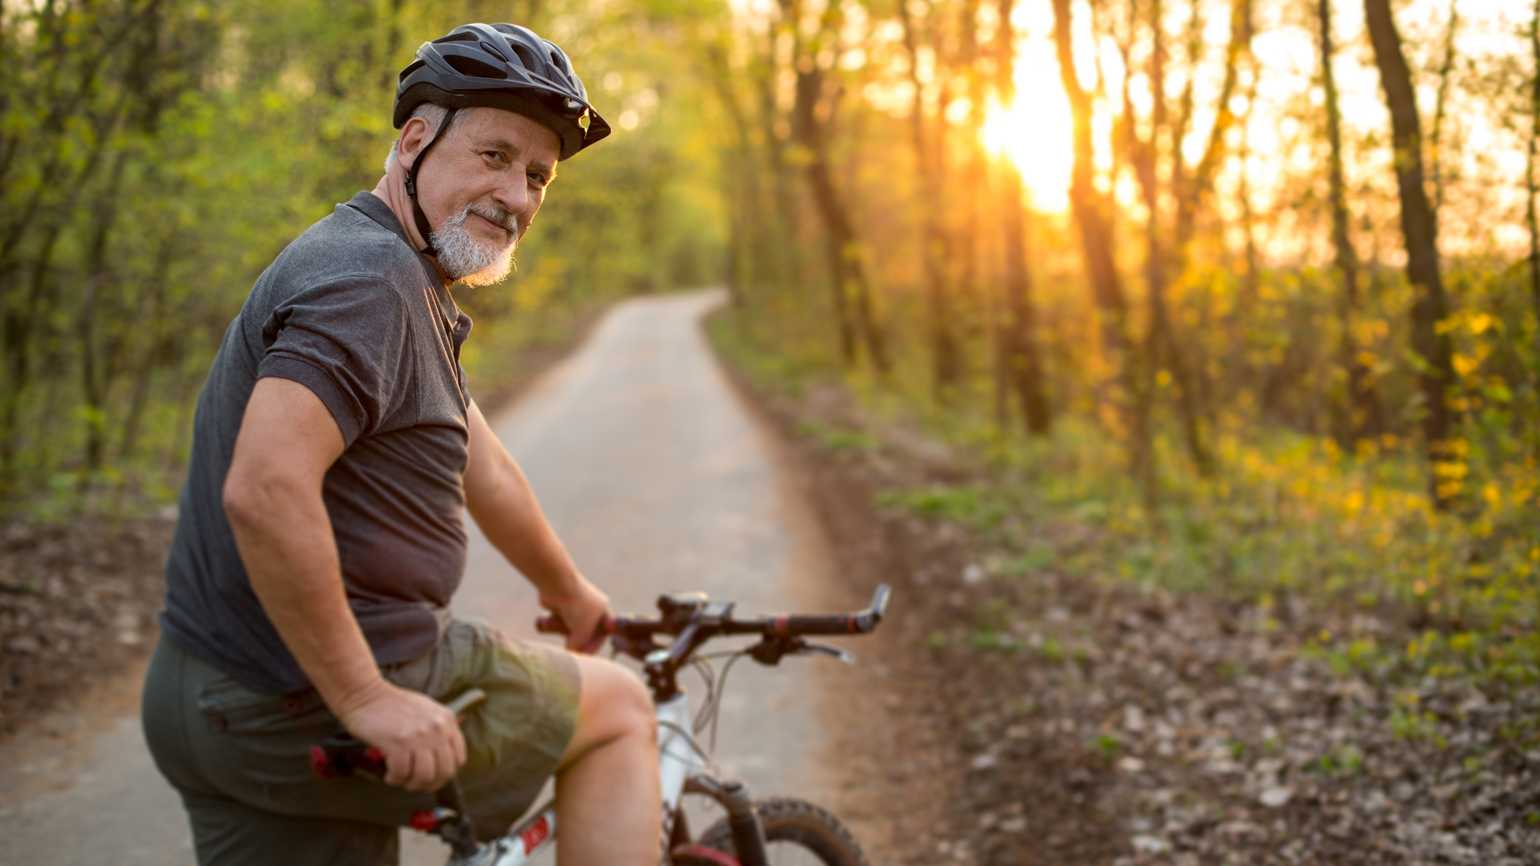 An older man getting ready for a morning bike ride in the woods.